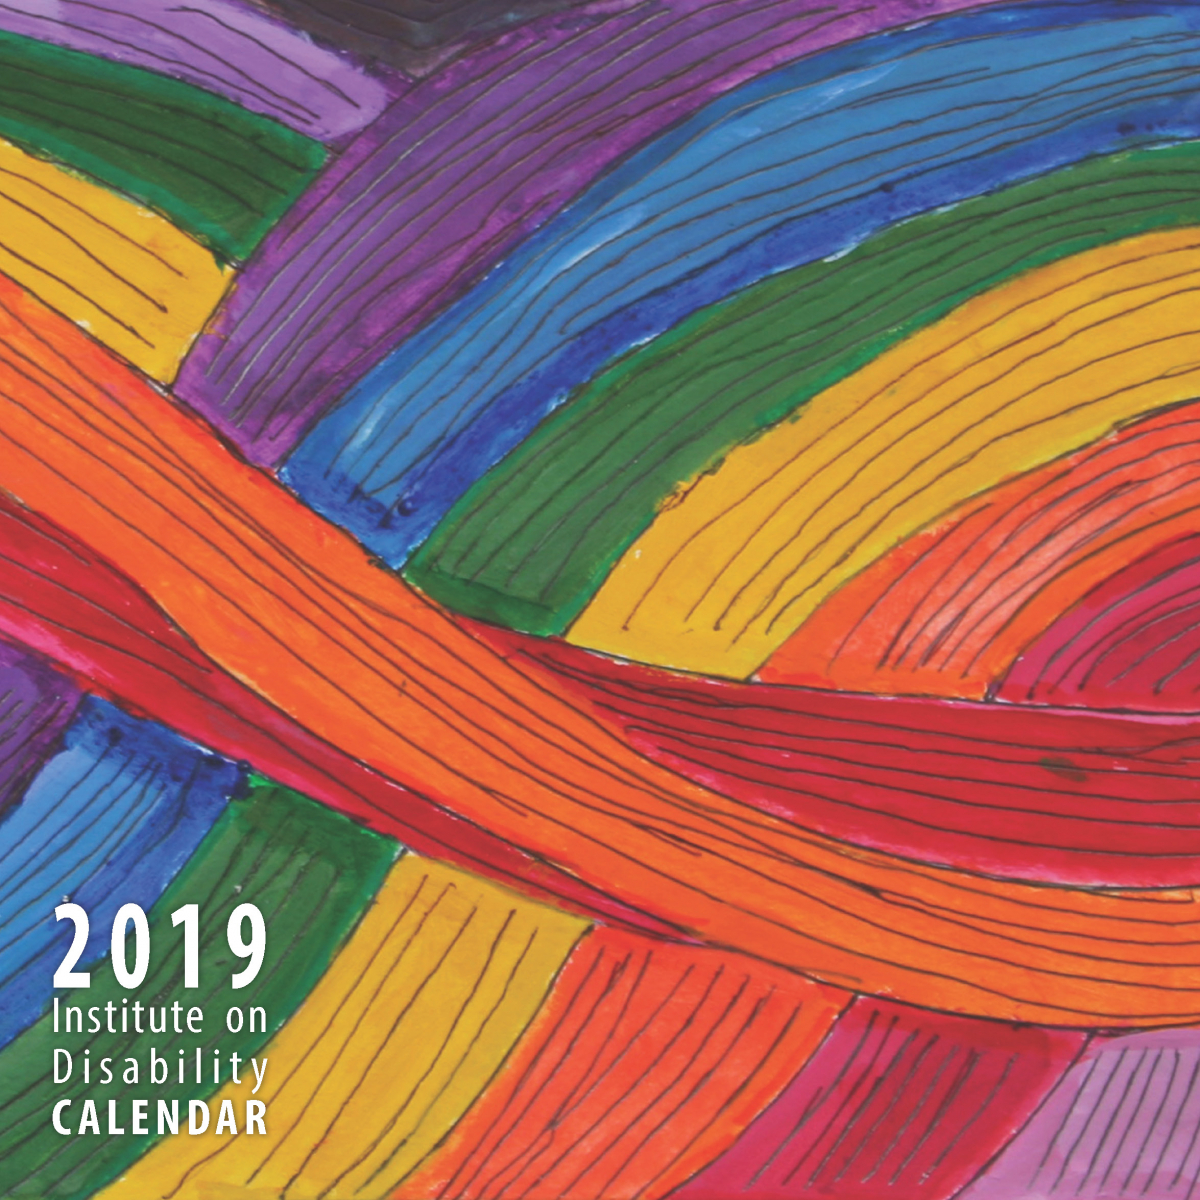 Unh Calendar 2020 2020 IOD Calendar: Call for Artists | Institute on Disability/UCED